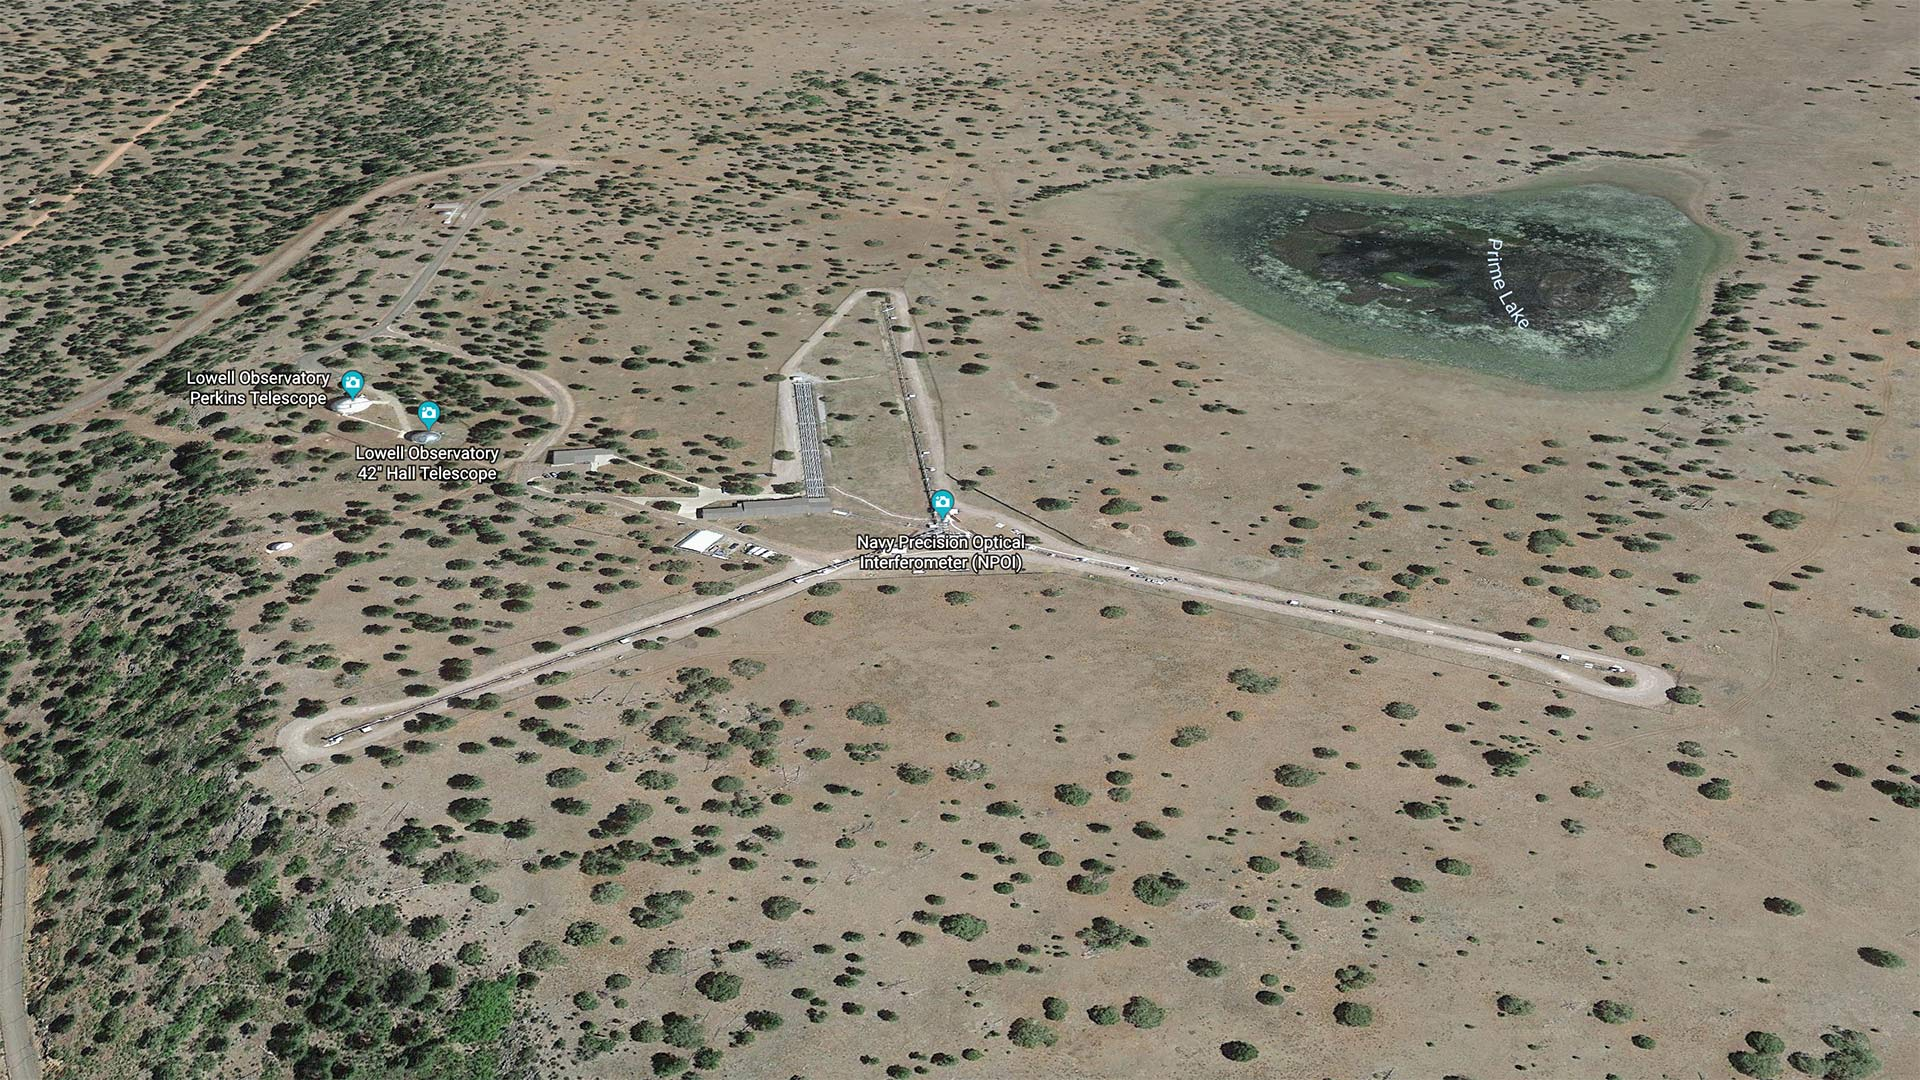 Google Earth view of the Navy Optical Precision Interferometer outside of Flagstaff.